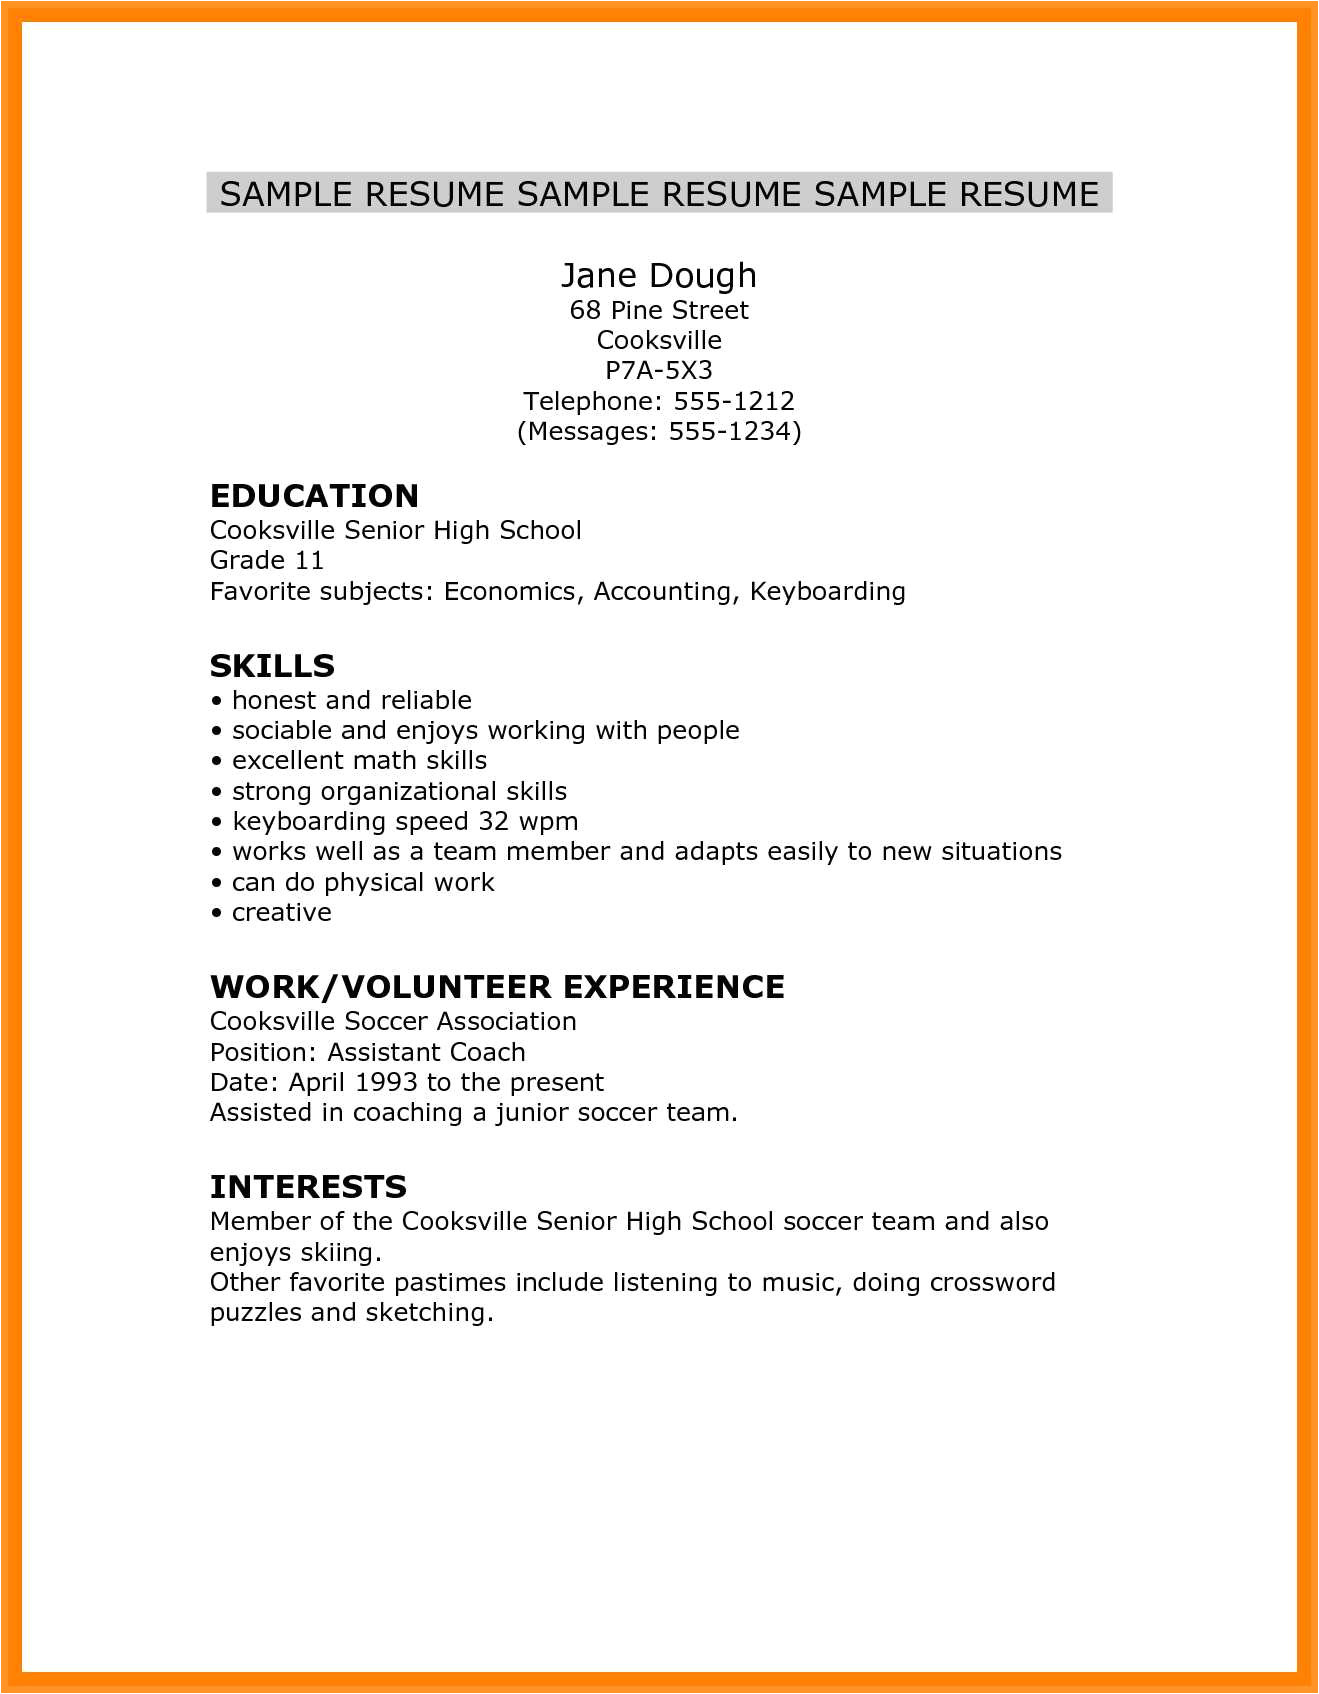 Resume Skills for High School Students 14 15 High School Student Resume Skills southbeachcafesf Com